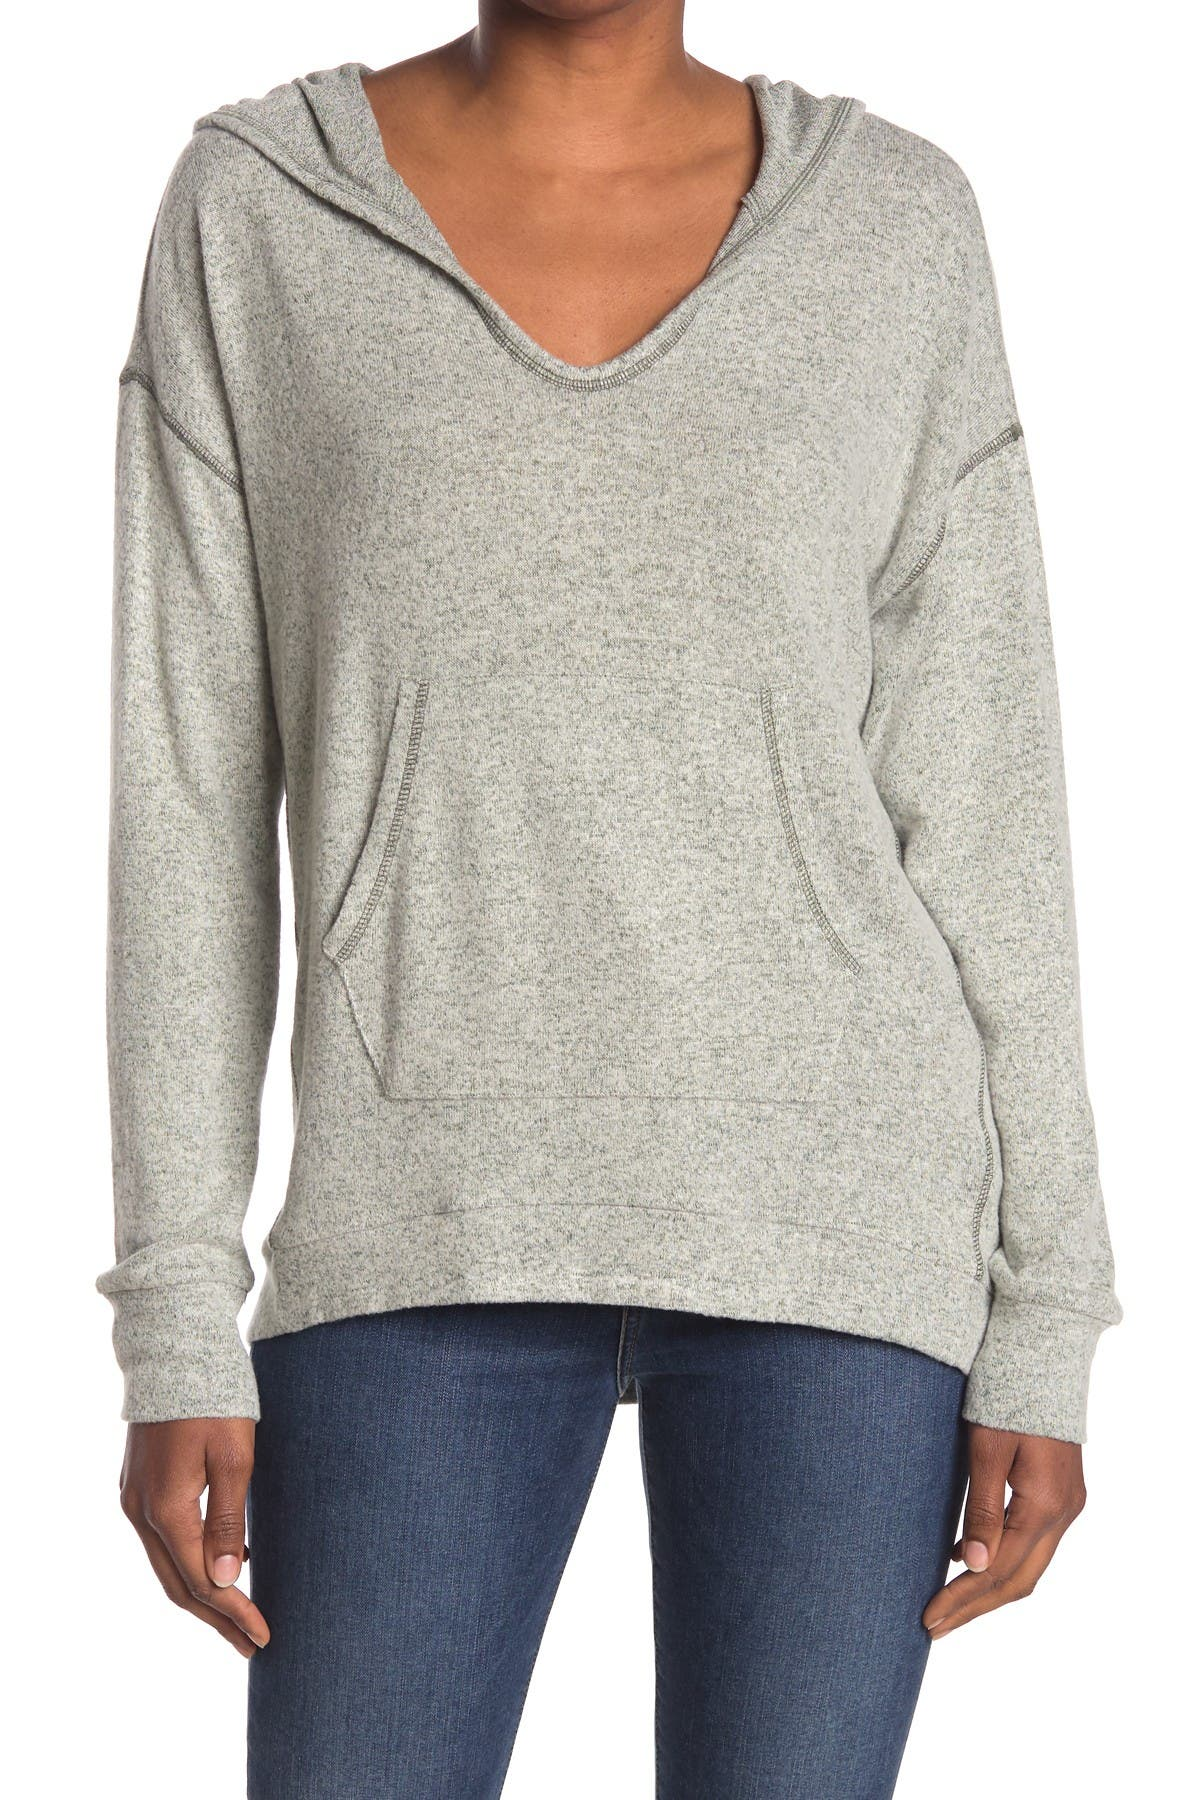 Image of MELLODAY Scoop Neck Contrast Stitch Hoodie